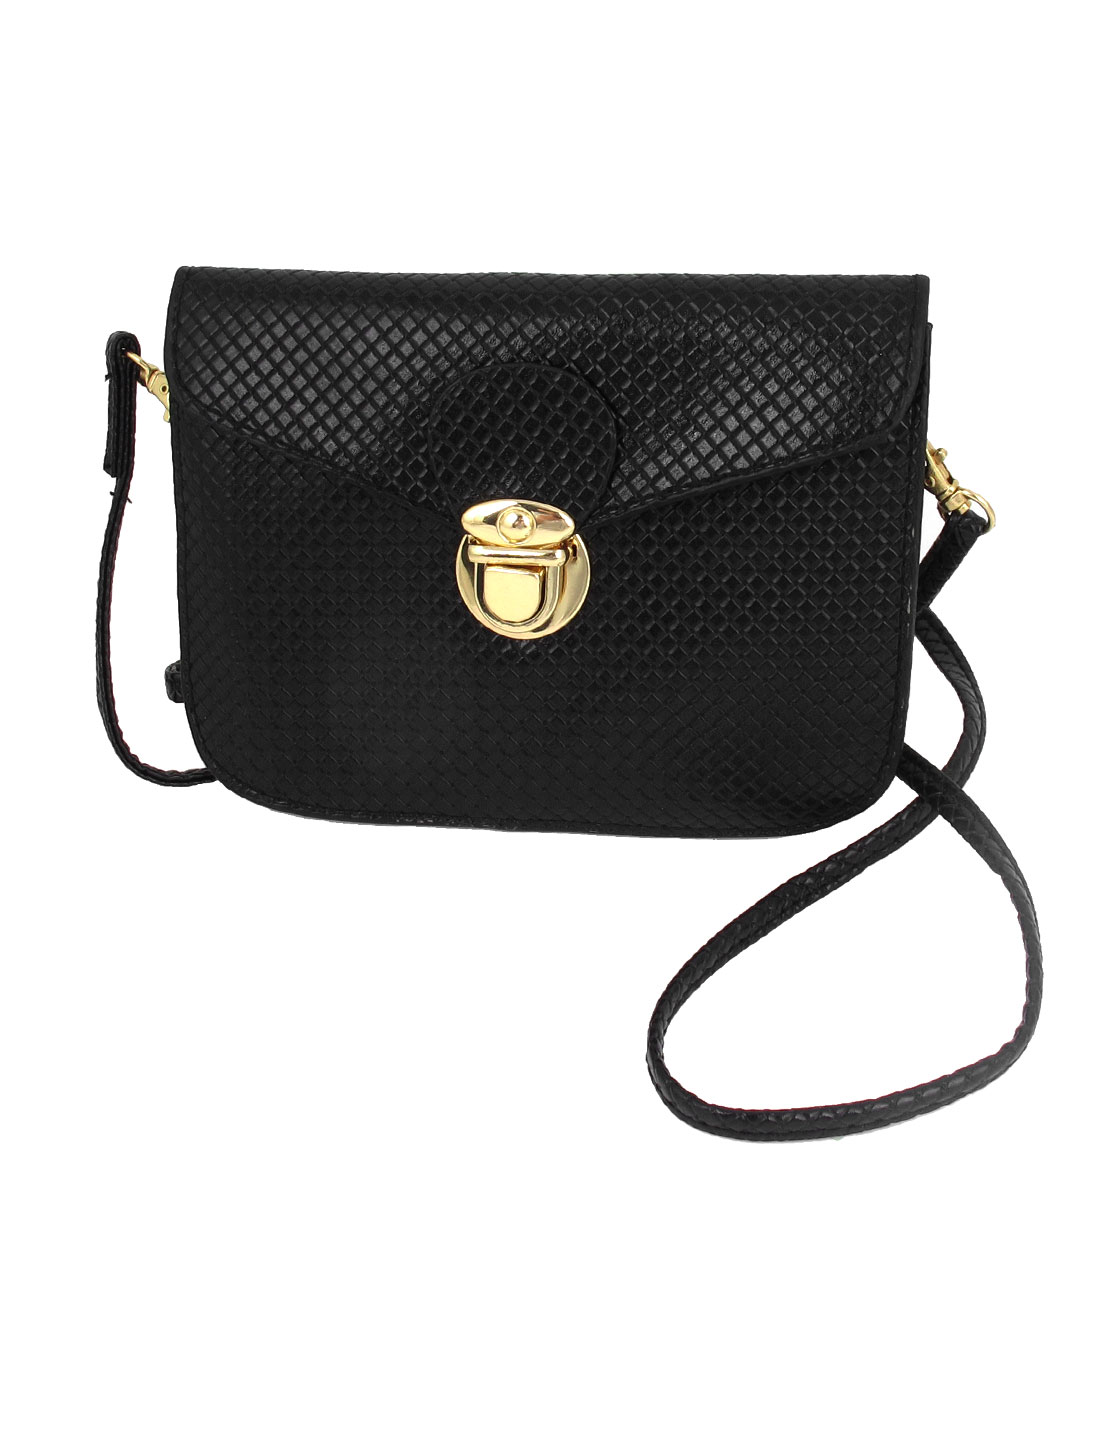 Black Faux Leather Push Lock Closure Black Crossbody Bag Handbag Purse for Lady